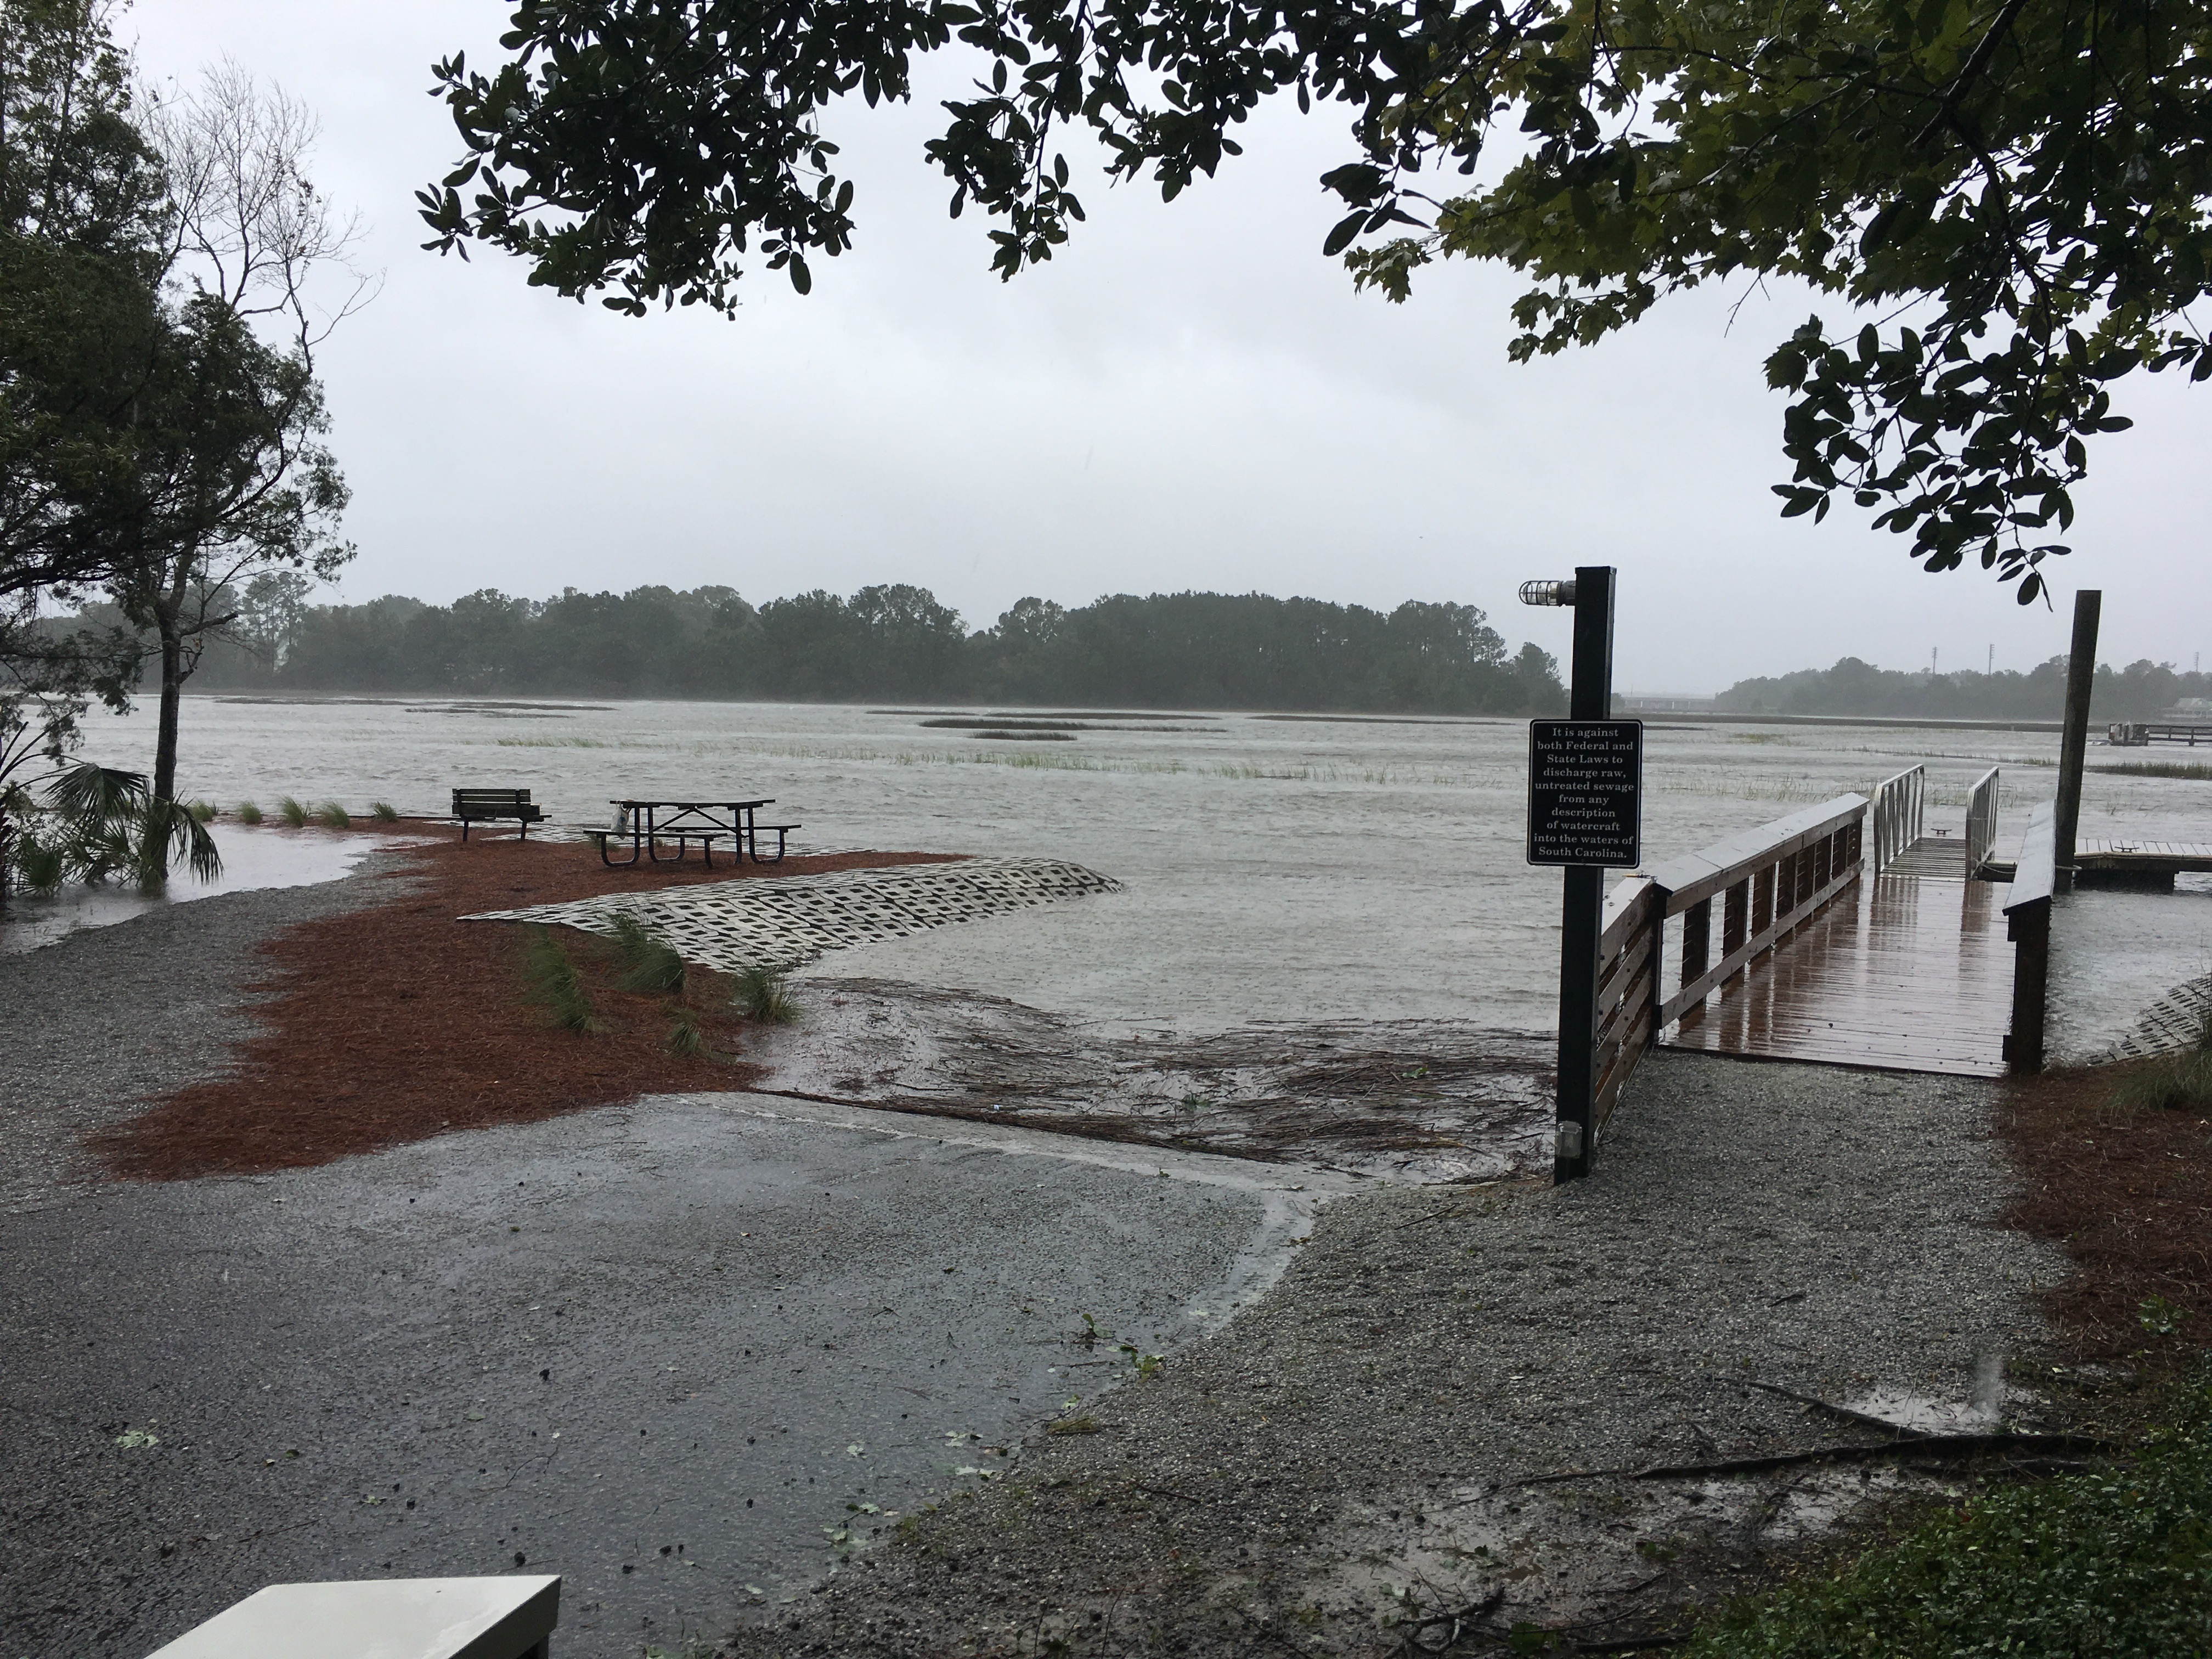 Water spills out from Beresford Creek at the Bellinger Island boat landing.